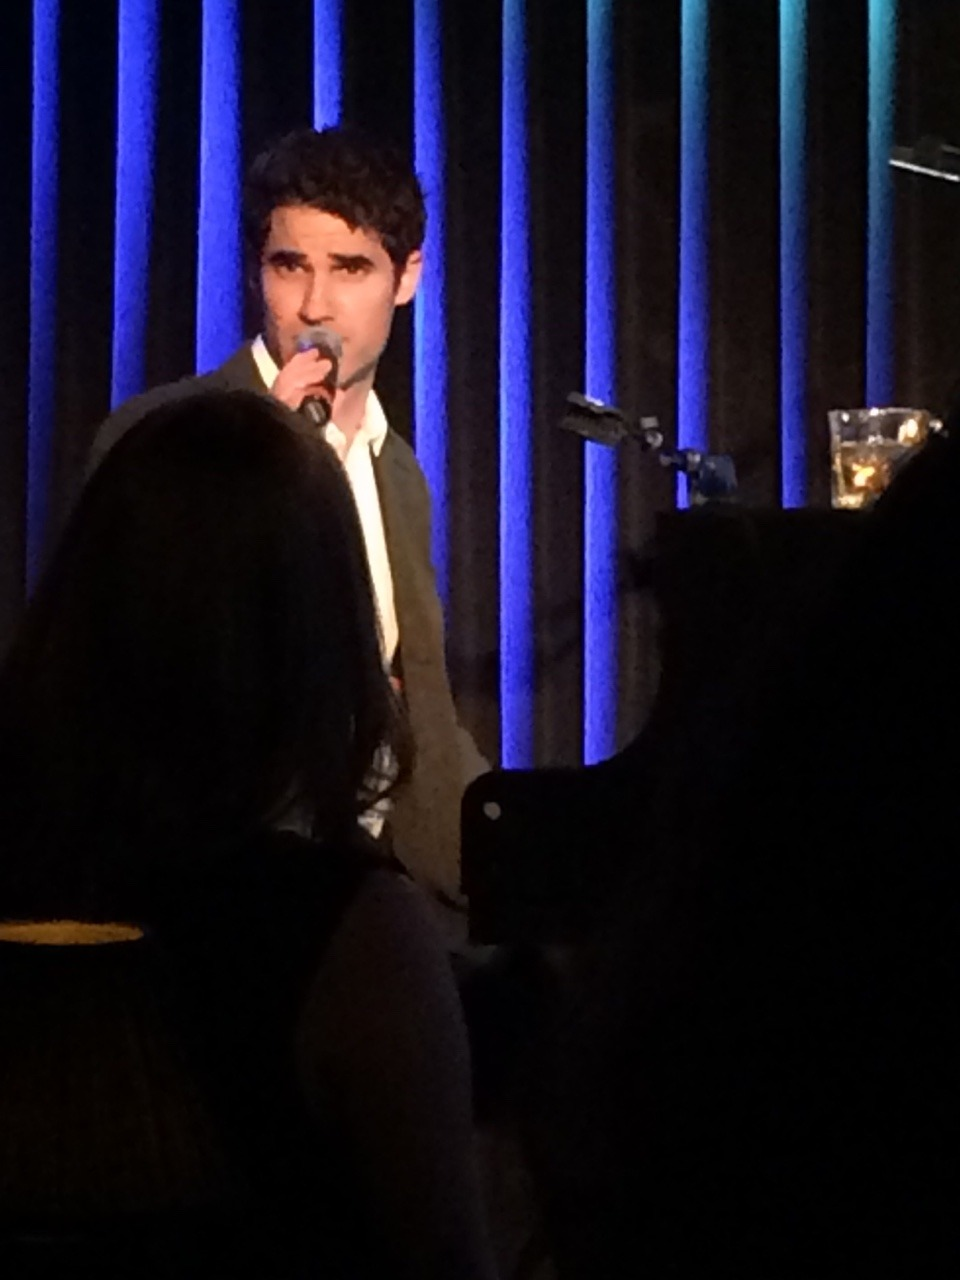 darrencriss - Darren's Concerts and Other Musical Performances for 2016 - Page 2 Tumblr_ohhxm28xdE1qlbe4wo6_1280